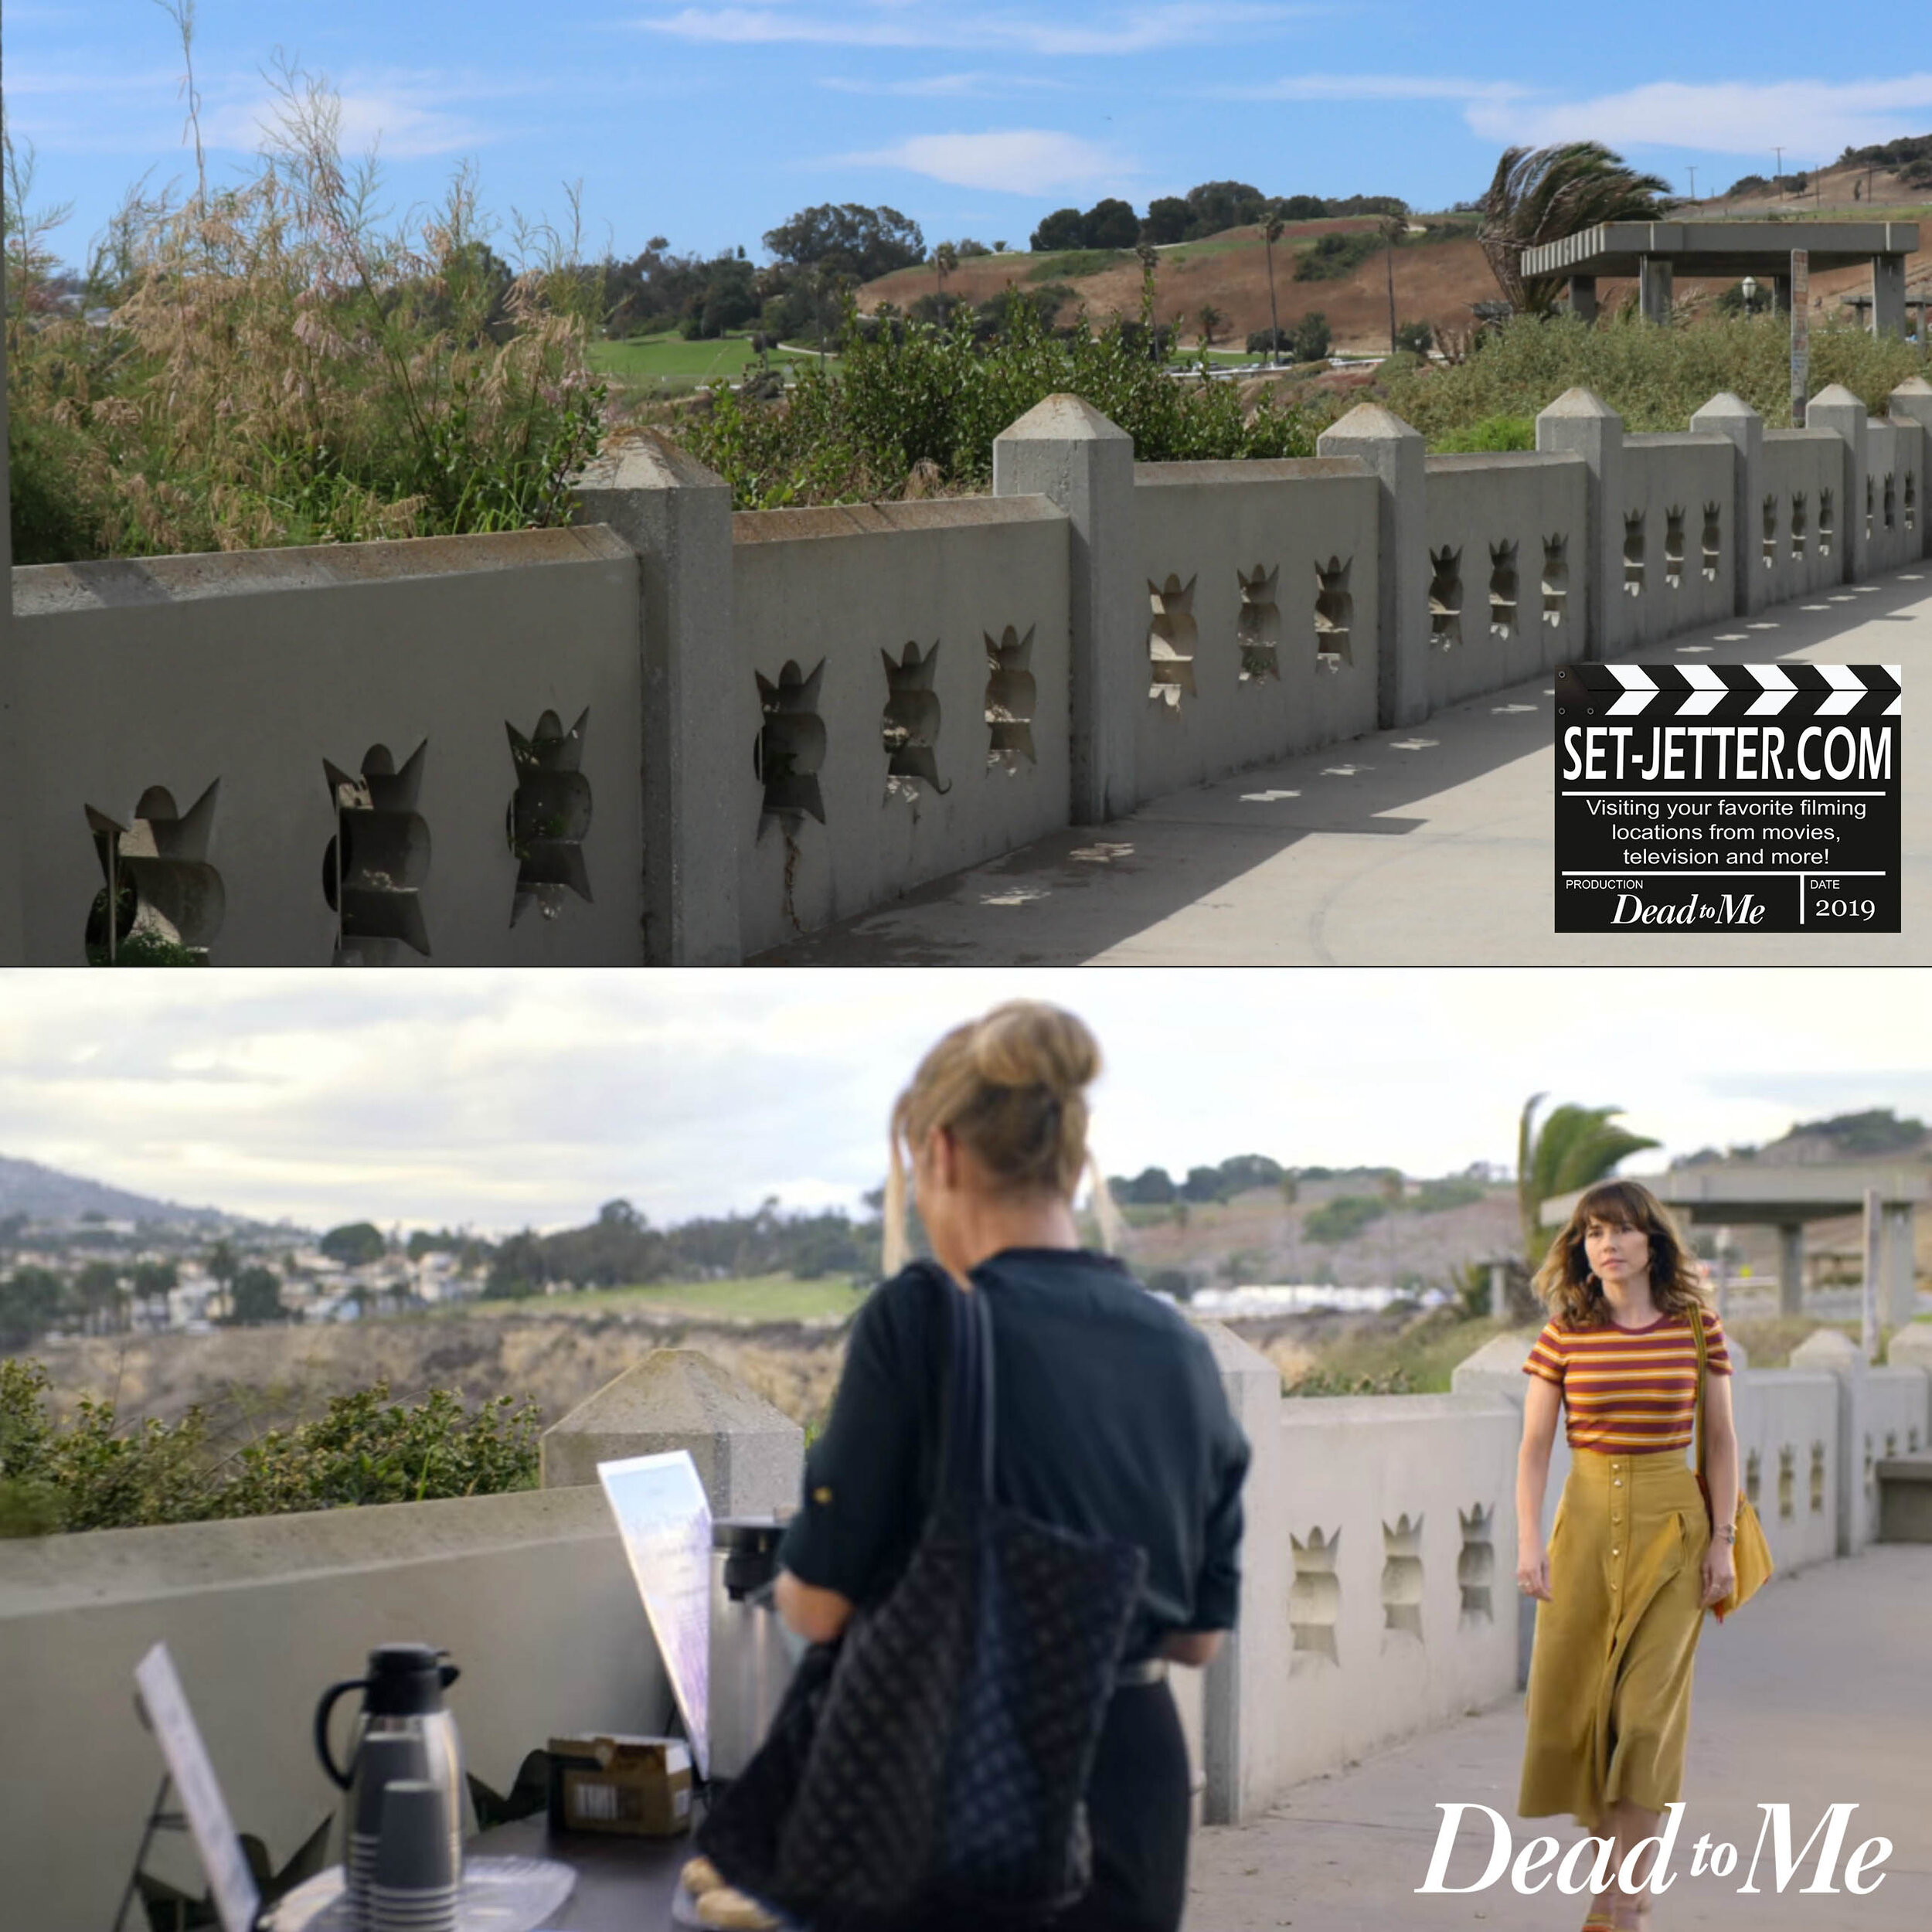 Dead To Me Filming Locations Set Jetter